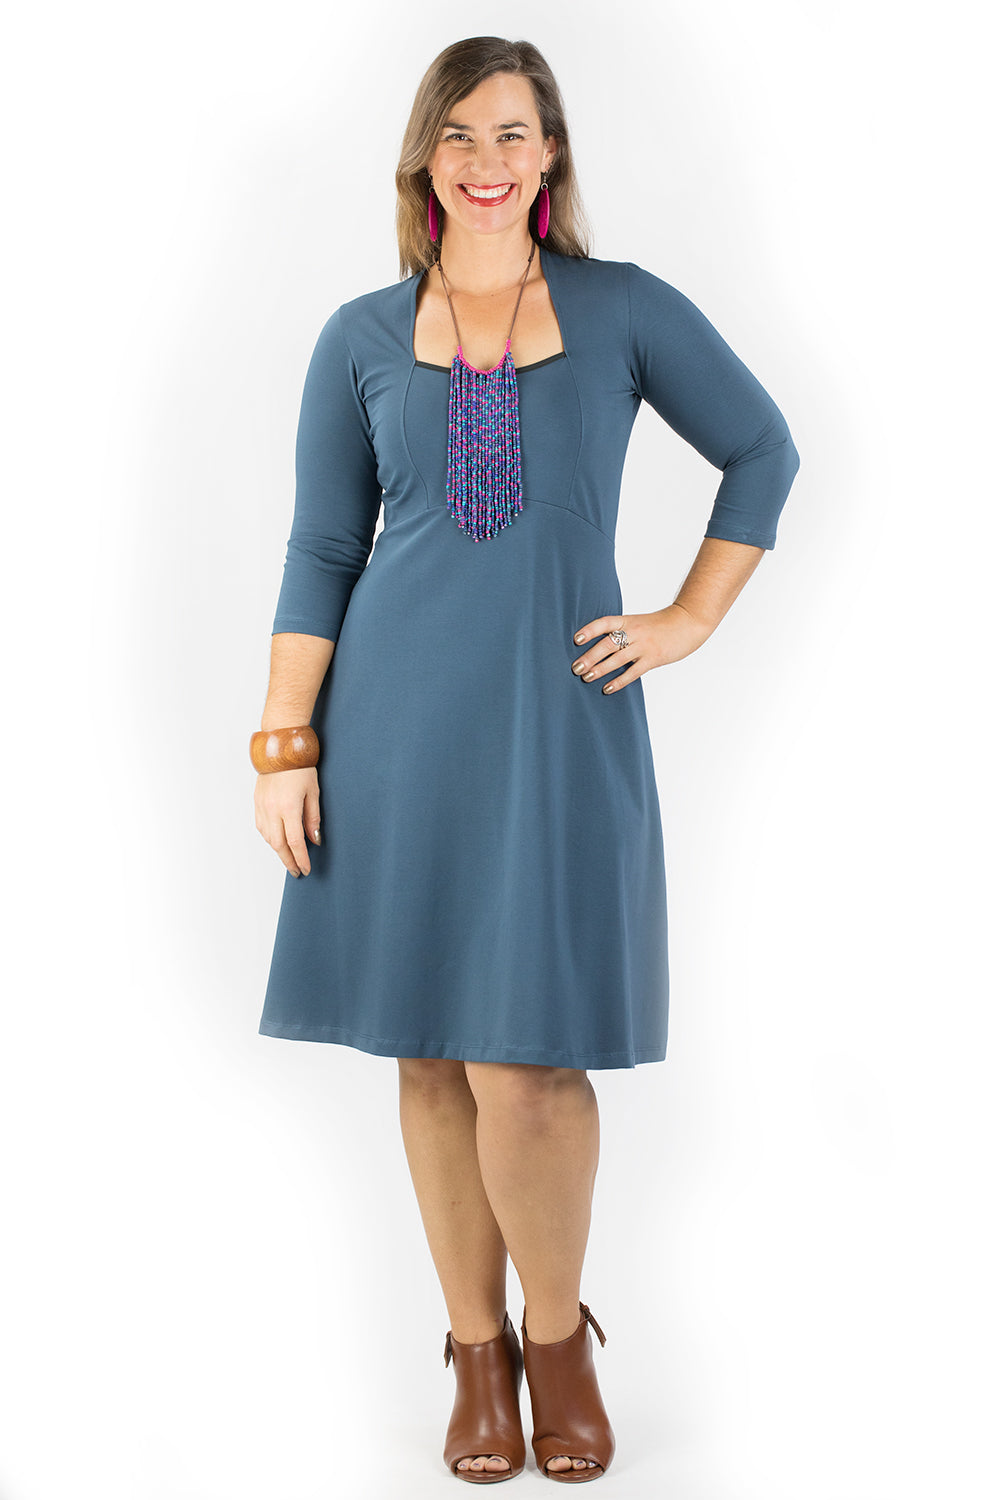 Cardamom Dress - Smokey Blue